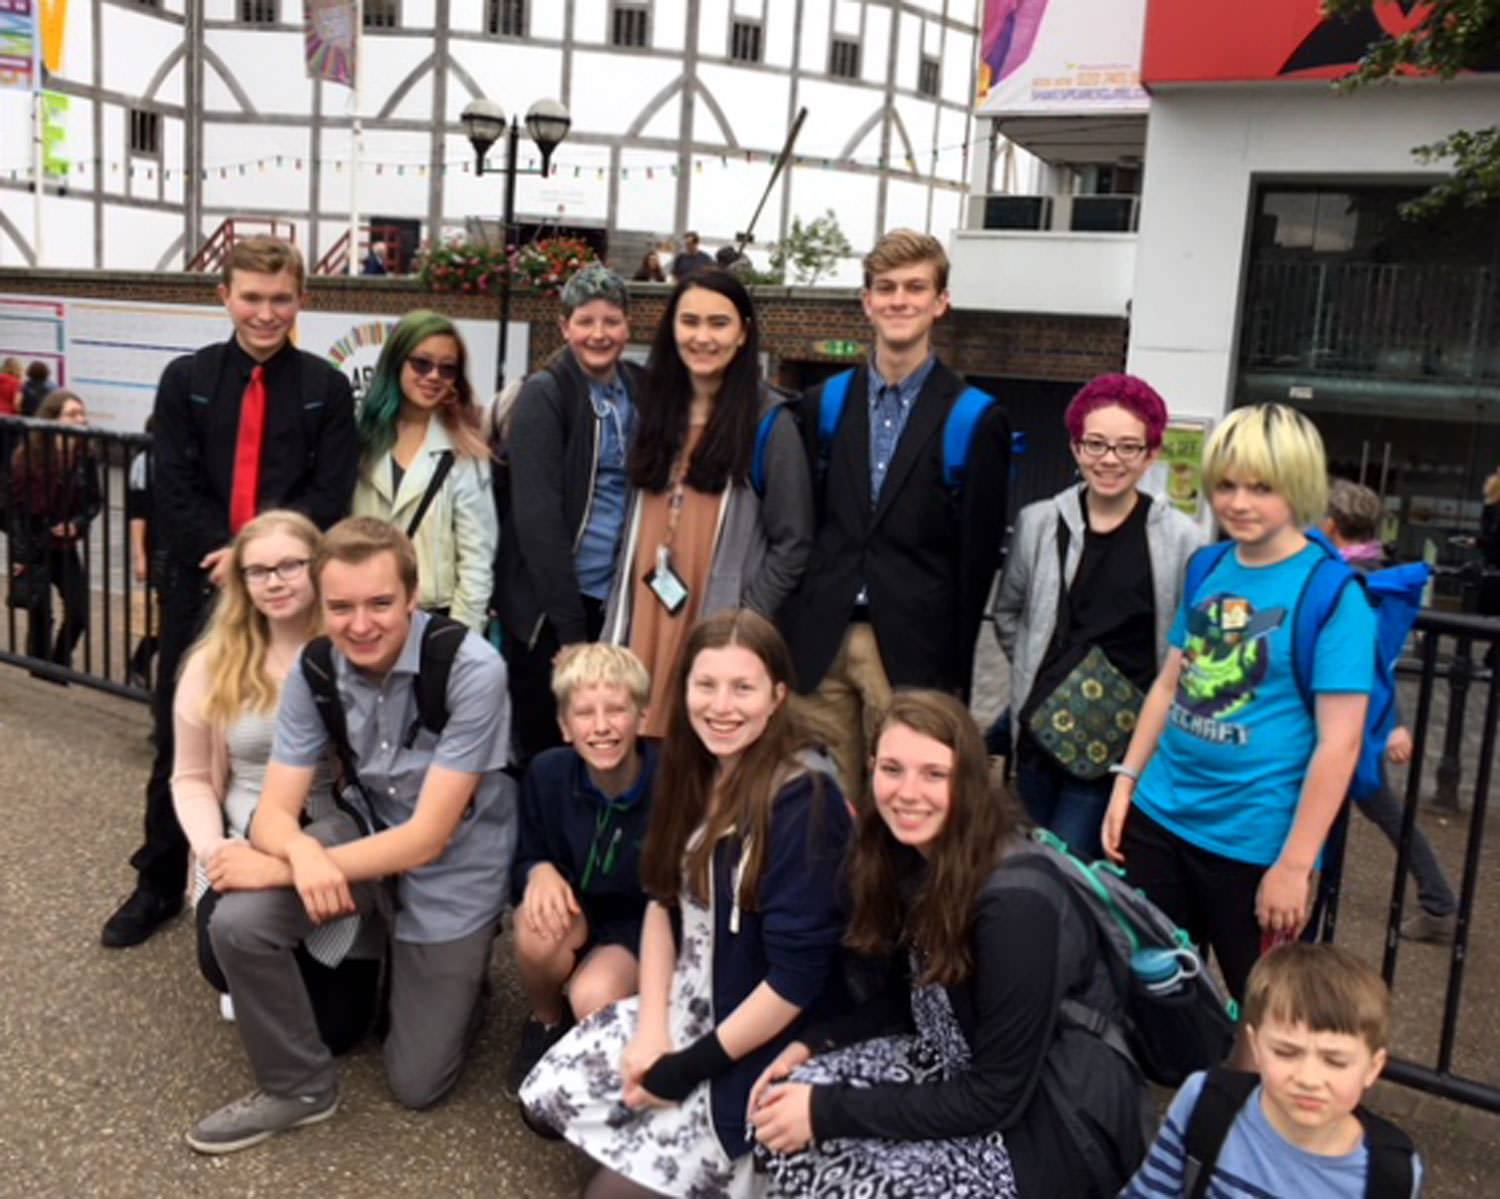 At the Globe Theater